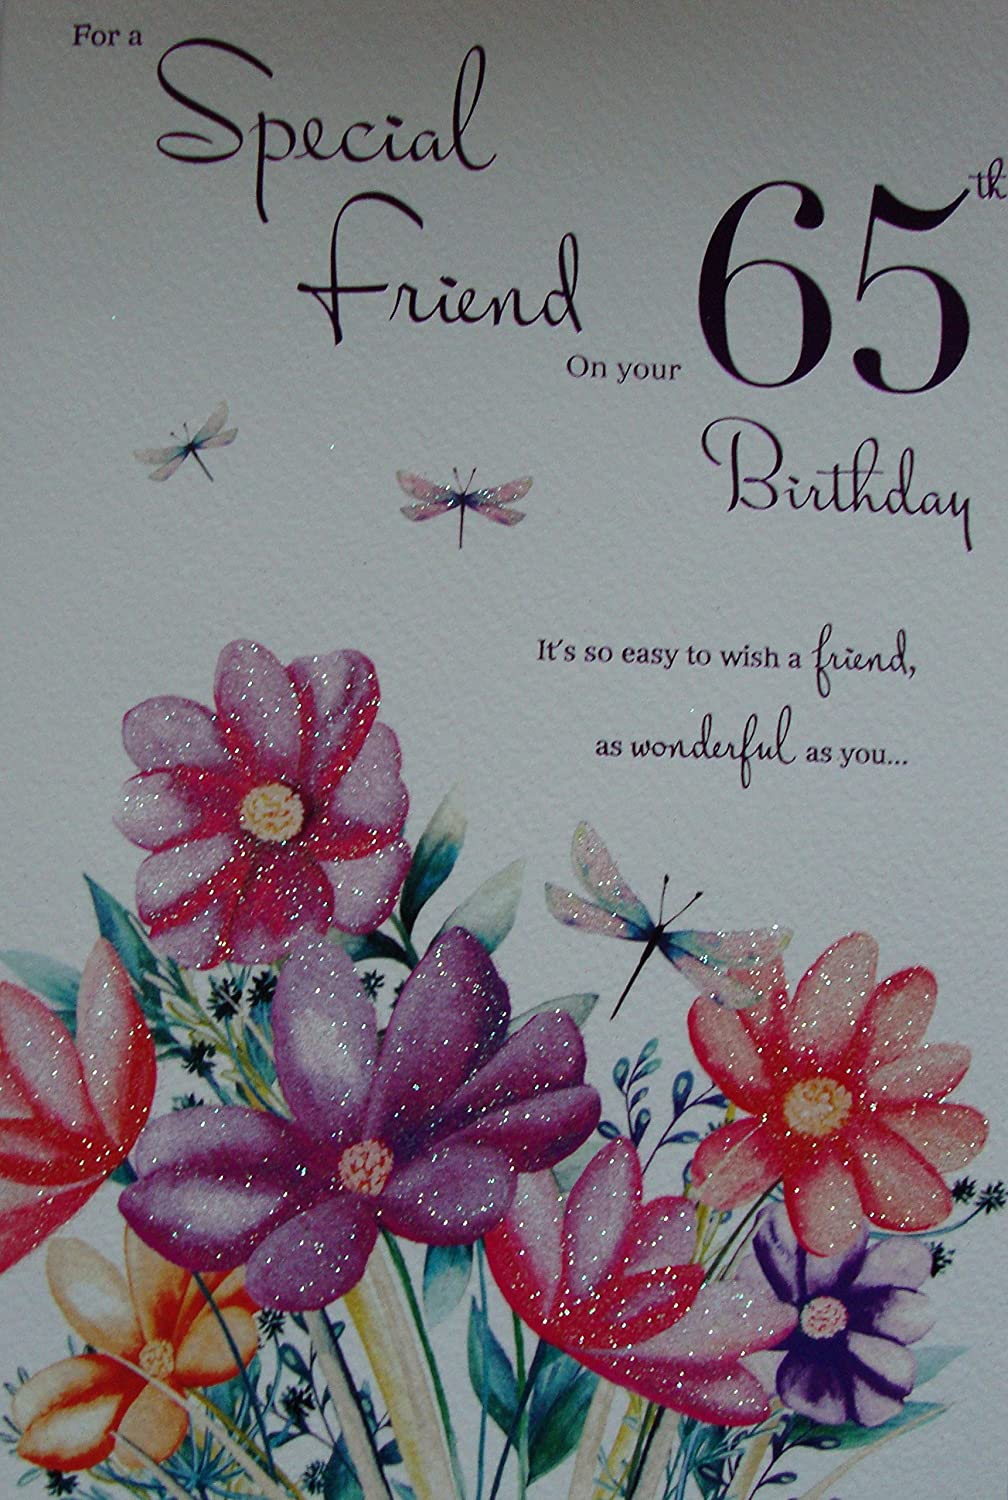 Download 65th birthday card turning 65 happy 65th birthday friend - Happy 65th Birthday To A Special Friend Card Amazon Co Uk Kitchen Home